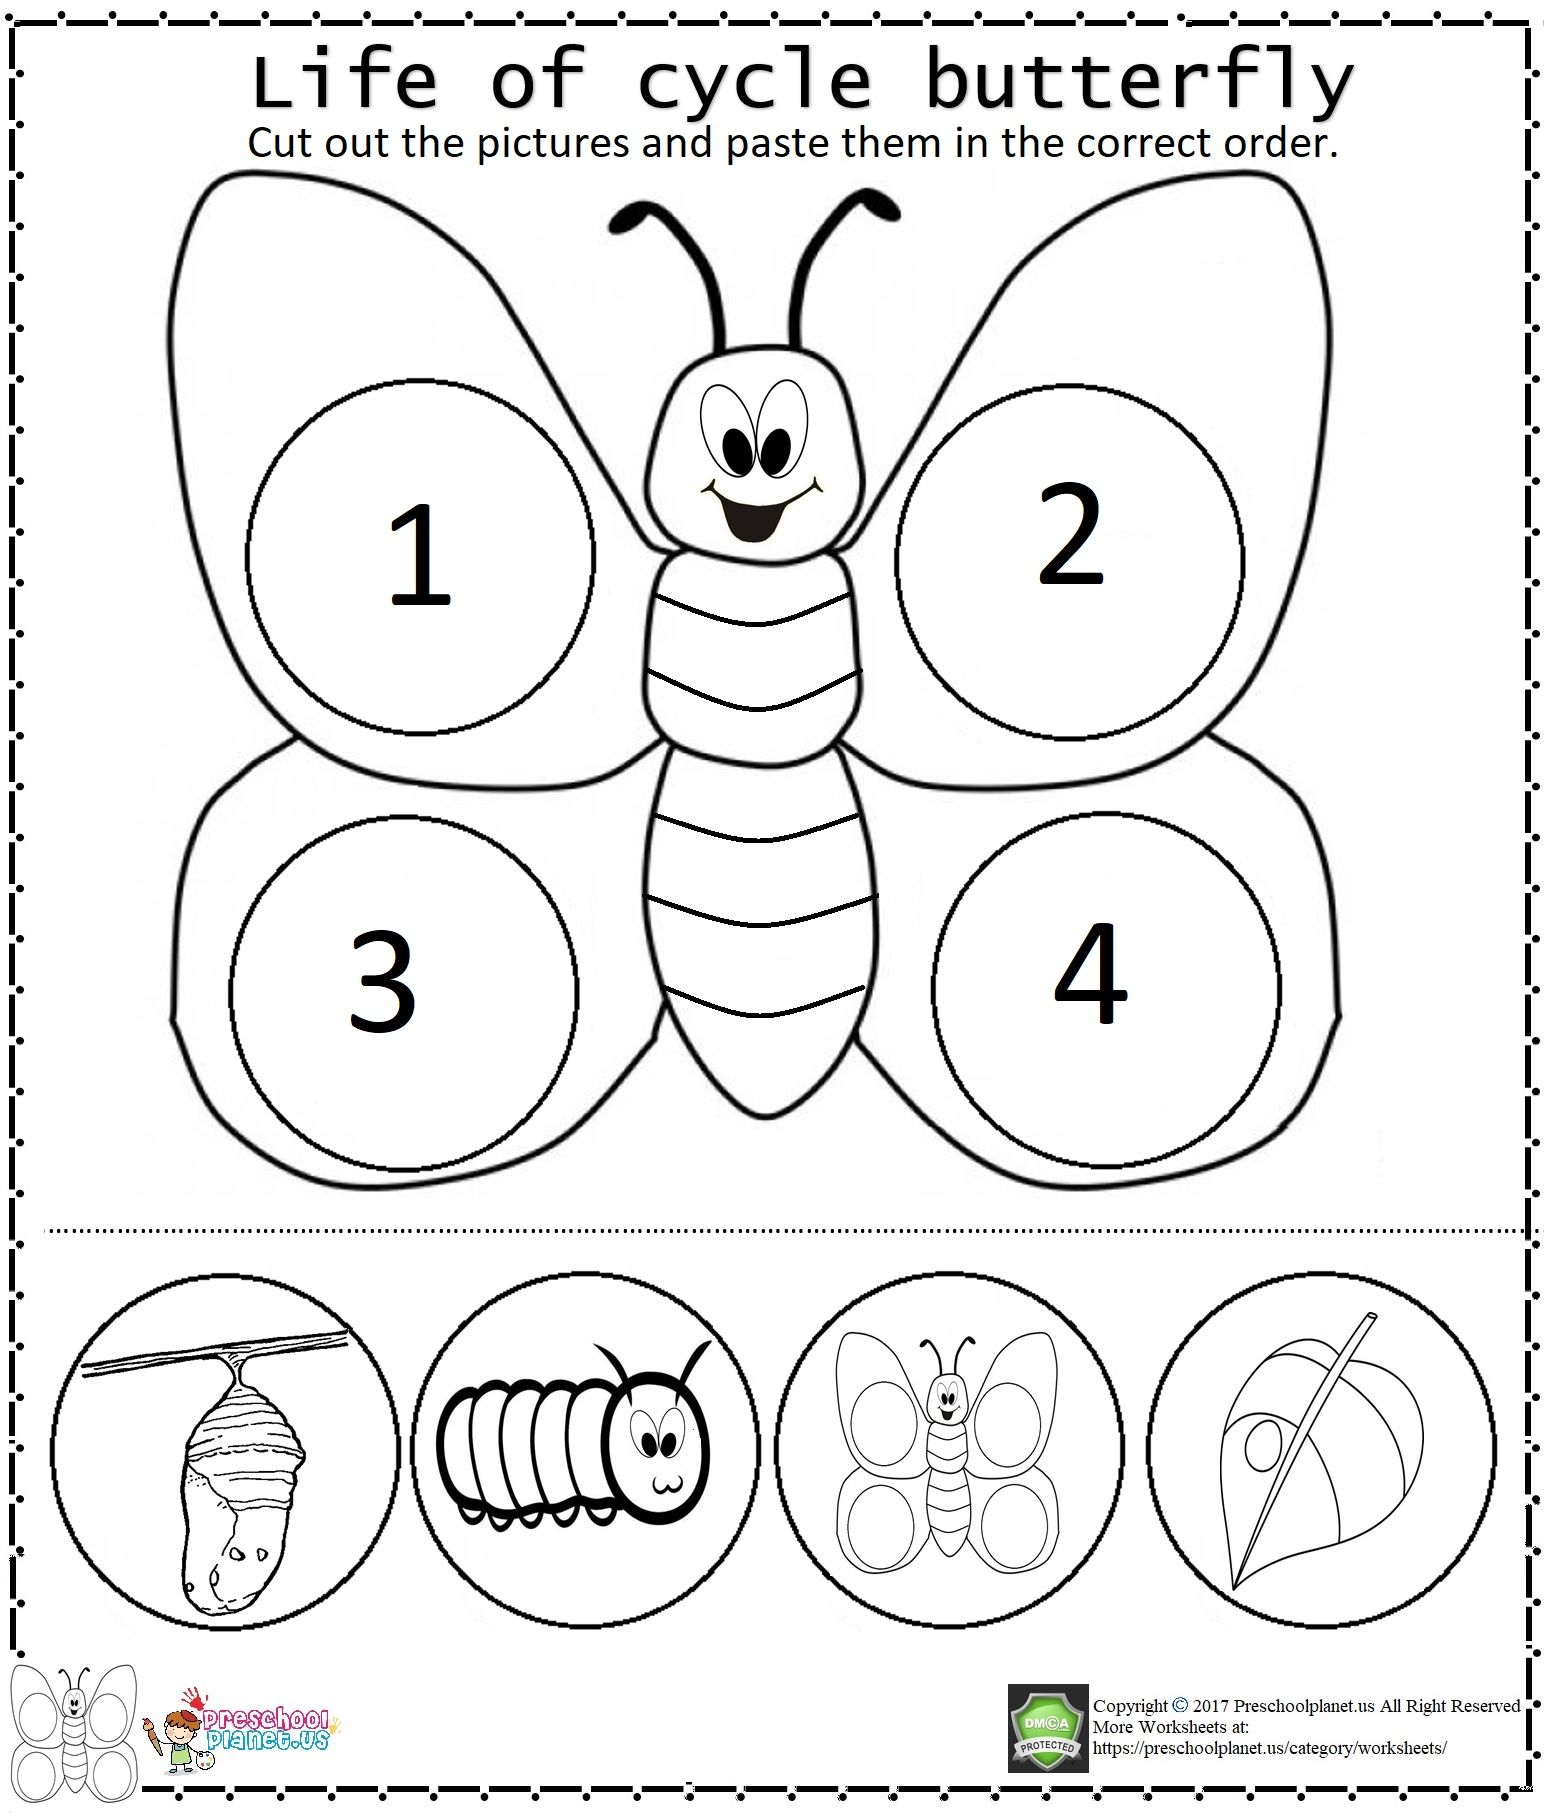 Life Of Cycle Butterfly Worksheet   Butterfly life cycle preschool [ 1816 x 1544 Pixel ]